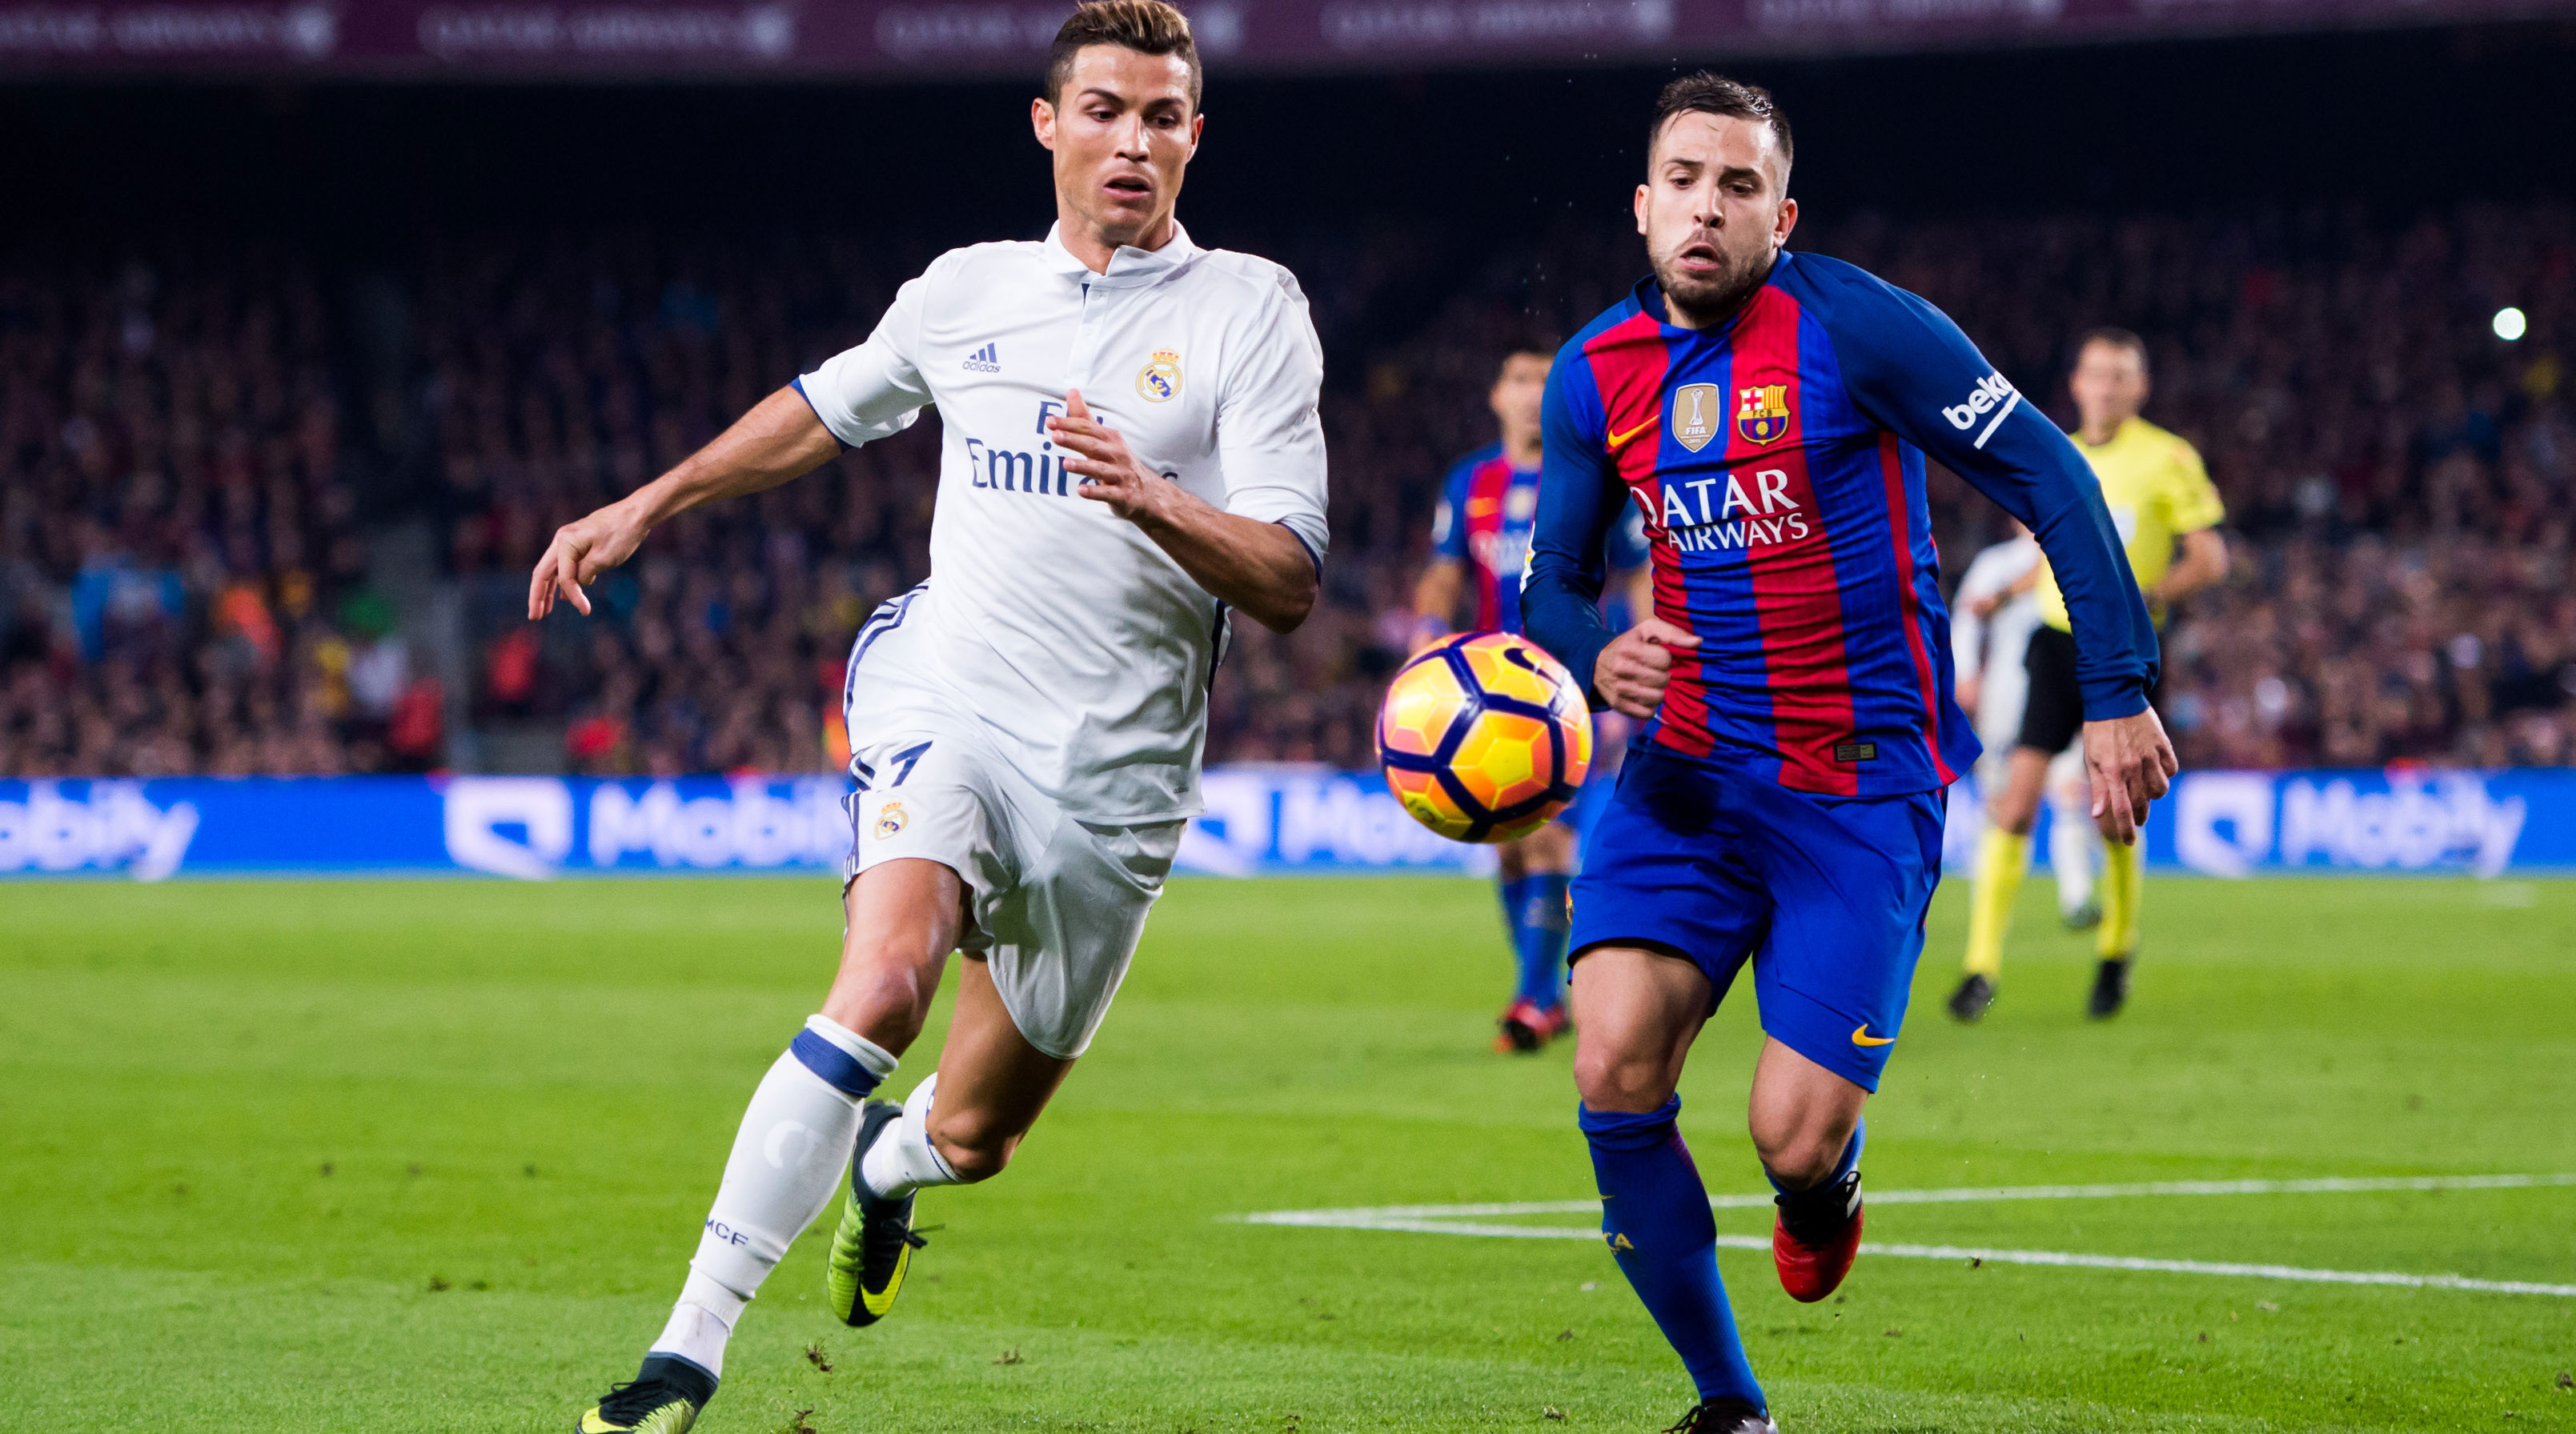 Watch Real Madrid Vs Barcelona Online El Clasico Live